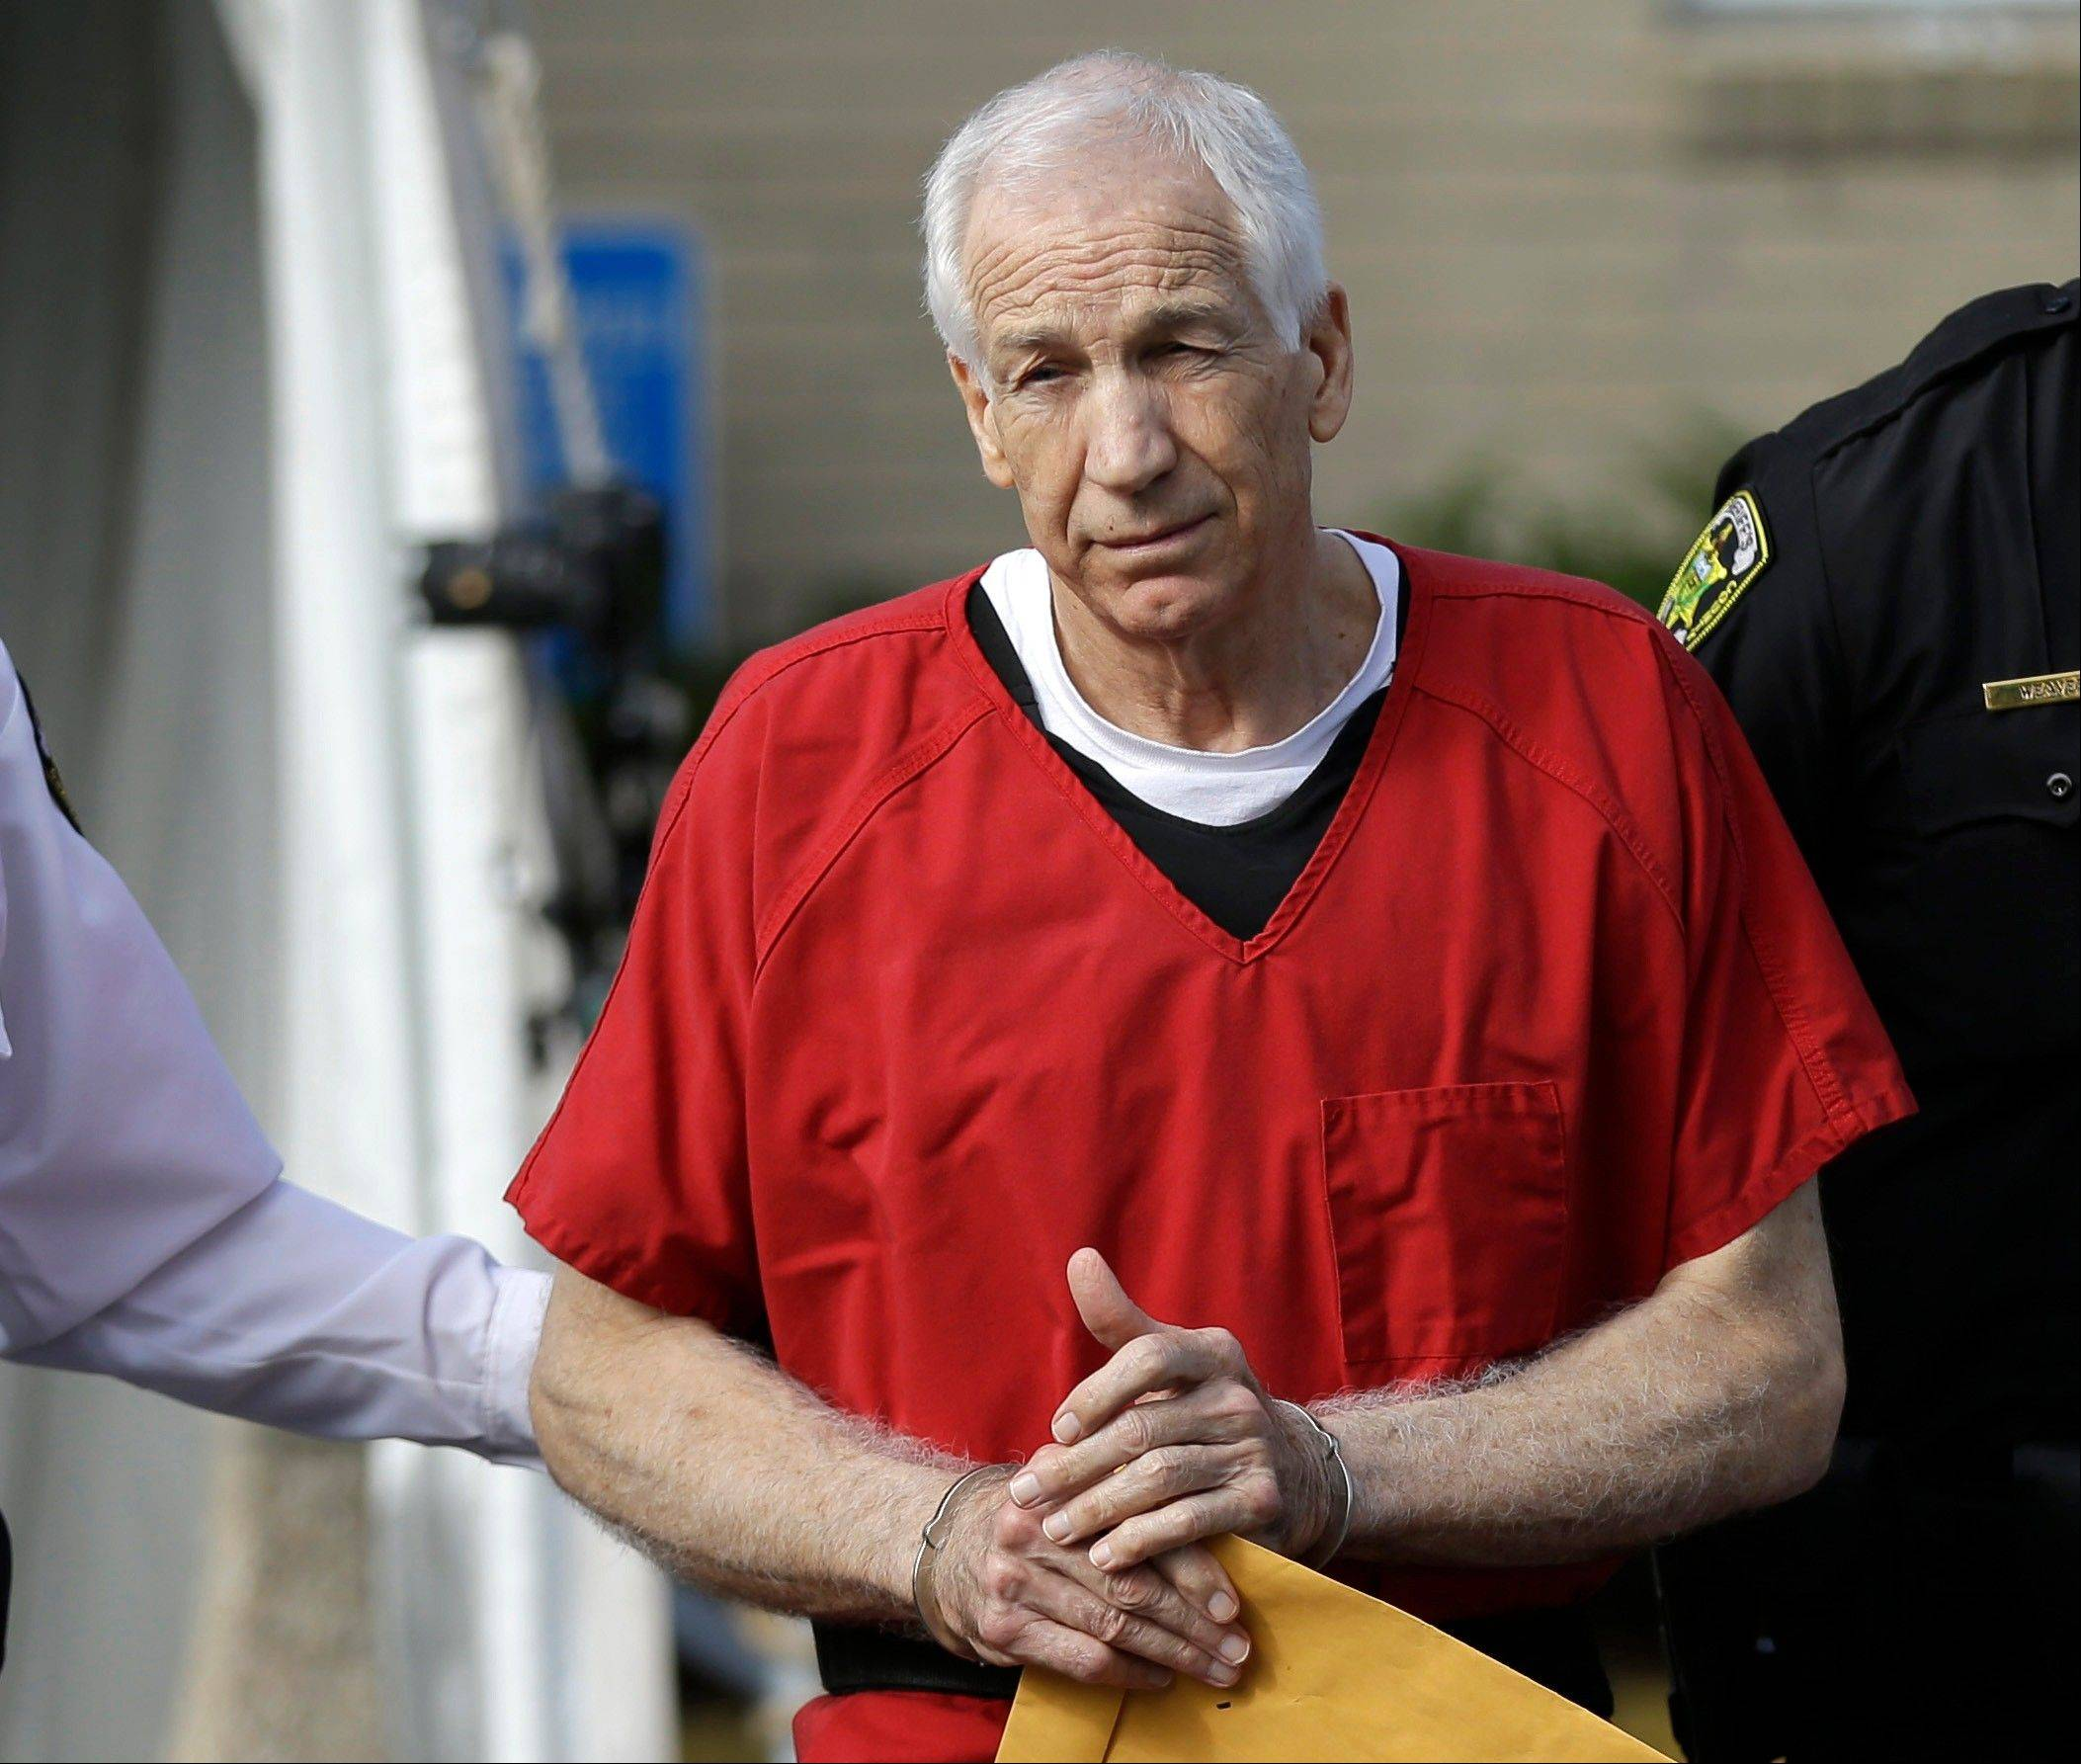 Former Penn State University assistant football coach Jerry Sandusky was convicted of 45 counts of child sexual abuse and is serving a decades-long prison sentence.